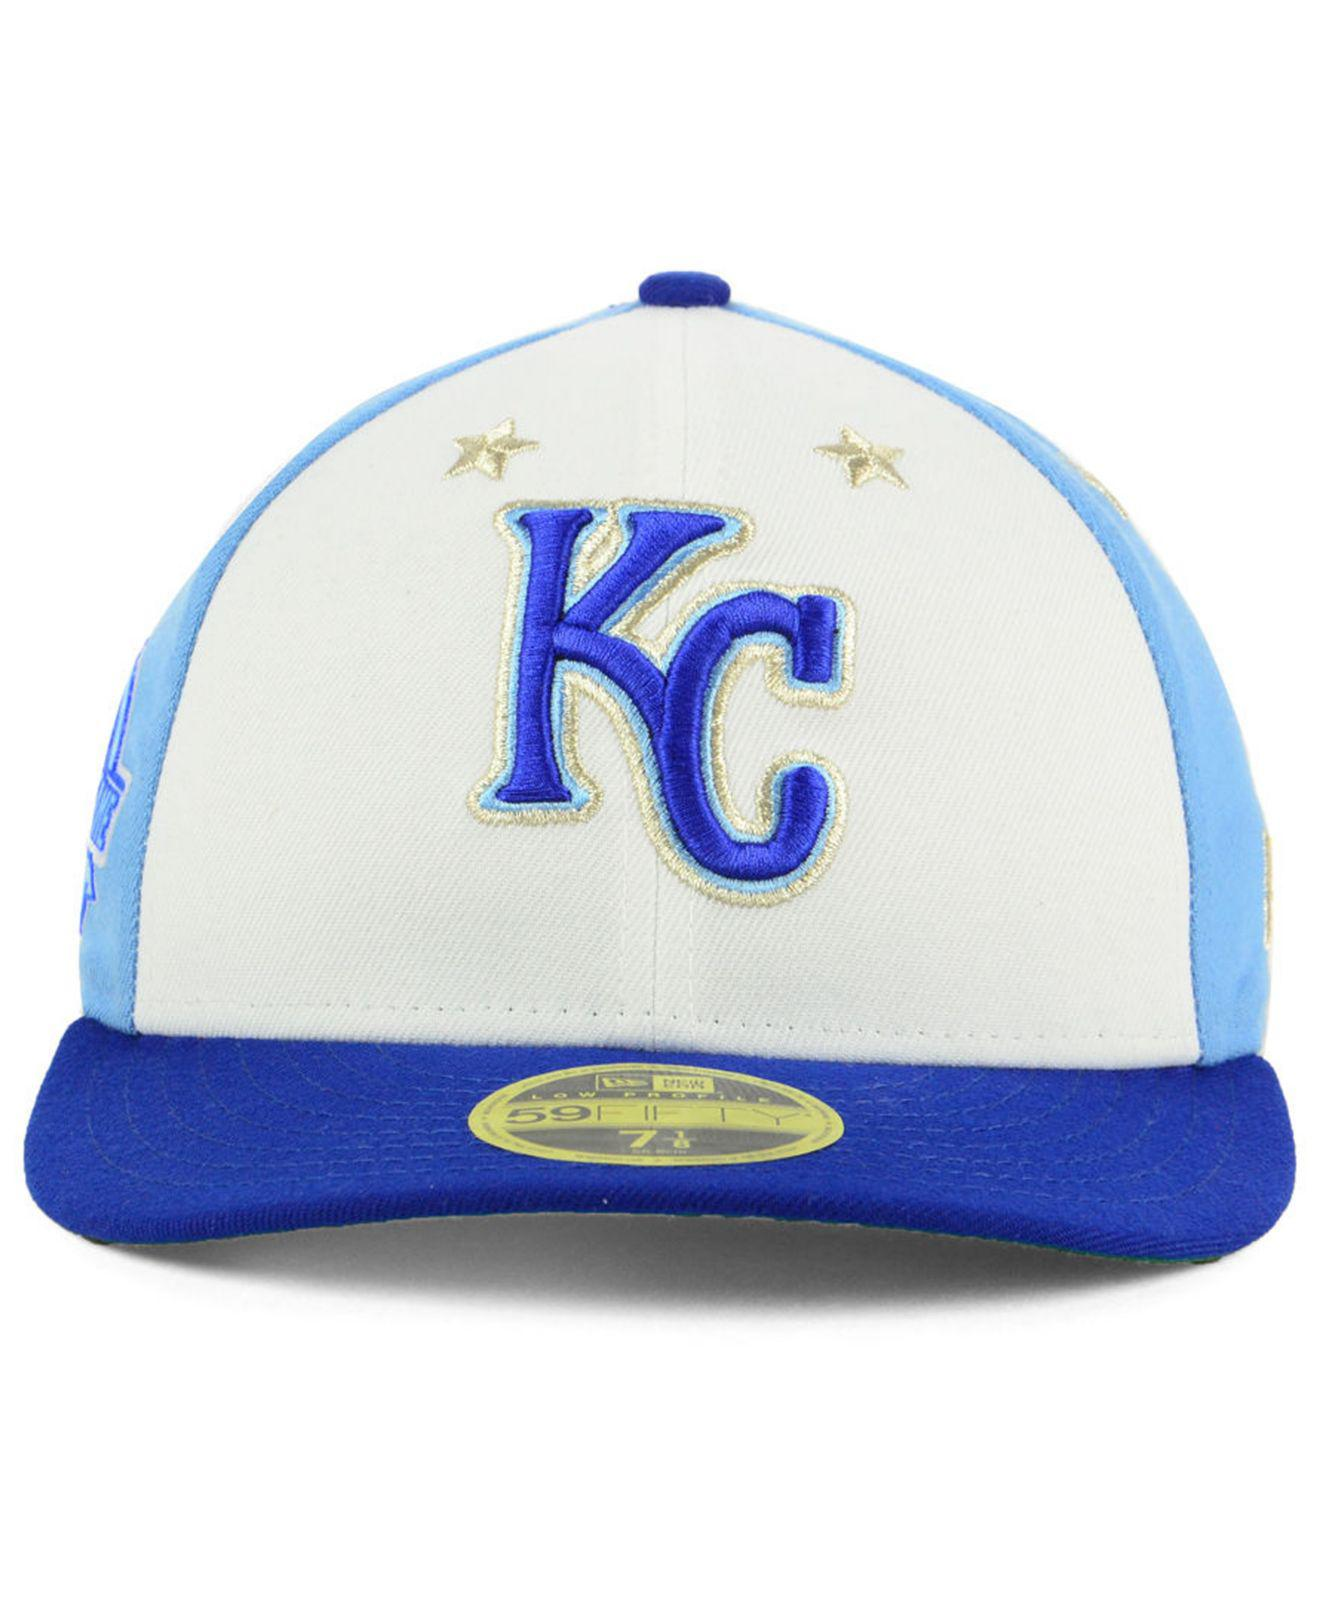 half off b6580 4822b ... low price lyst ktz kansas city royals all star game patch low profile  59fifty fitted cap